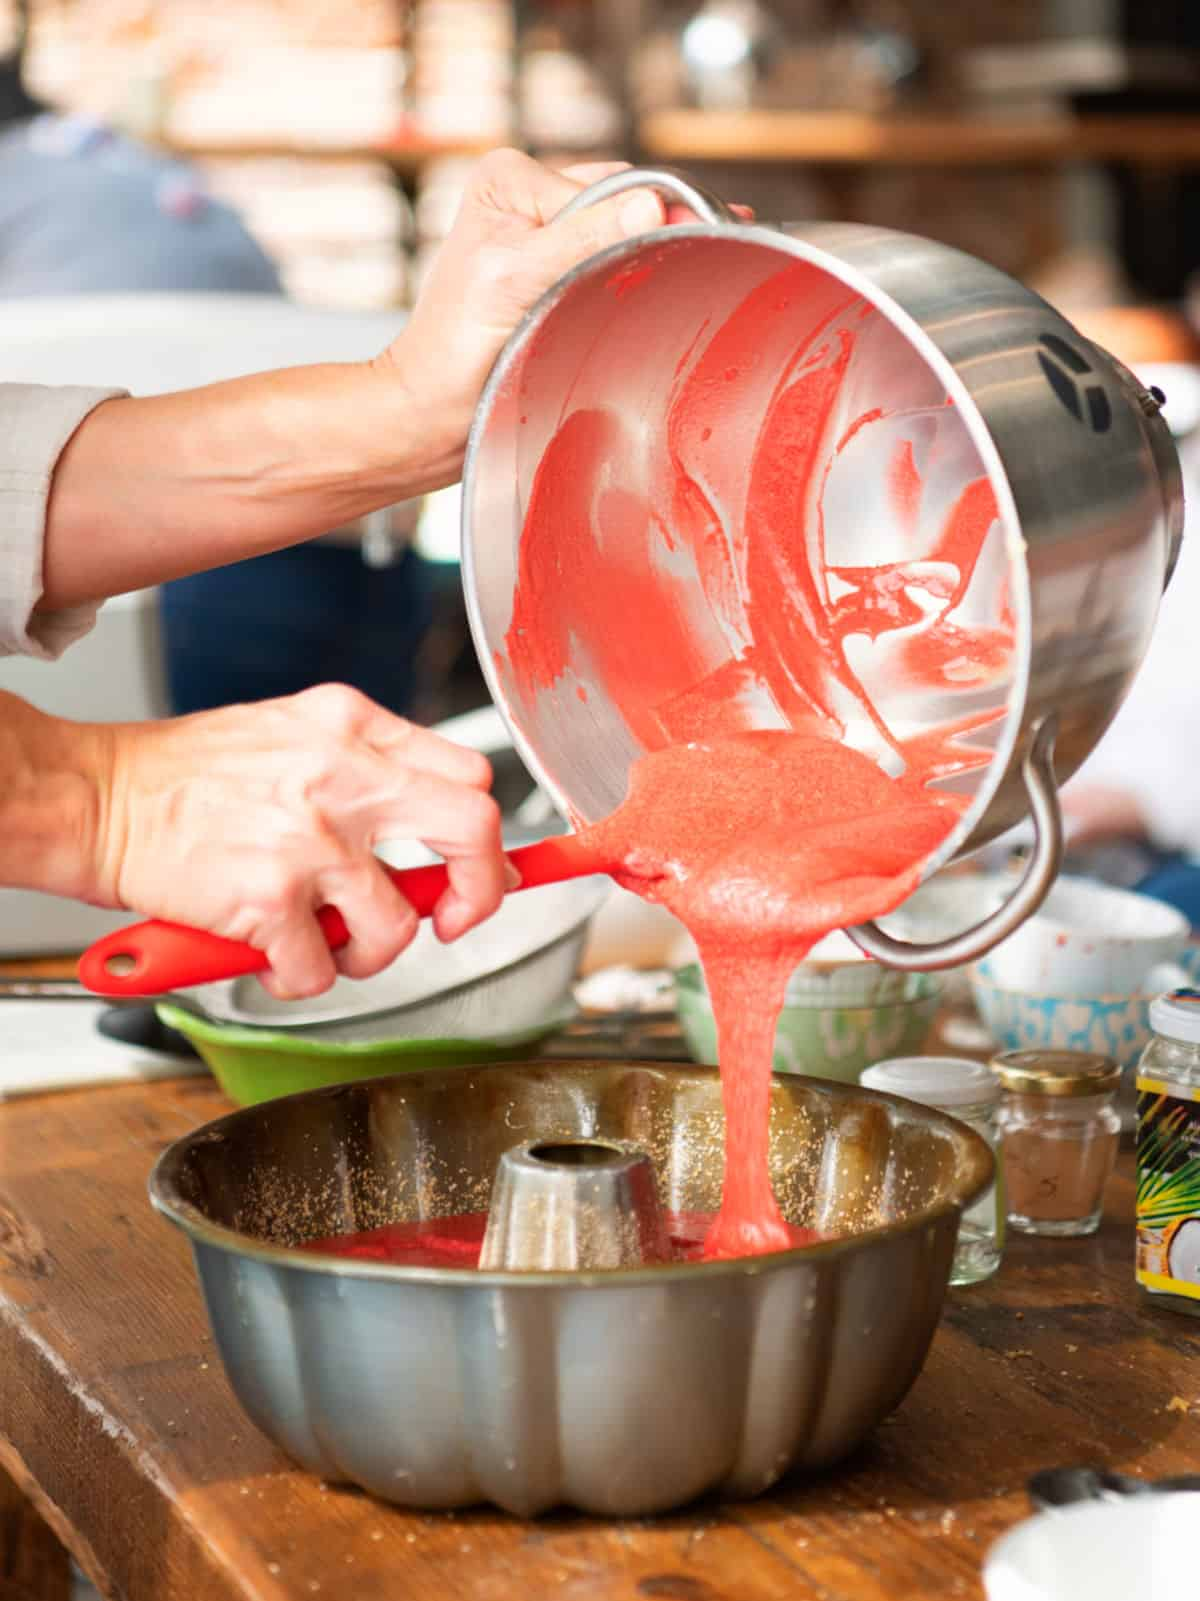 Pouring red cake batter into metal bundt pan from stand mixer bowl